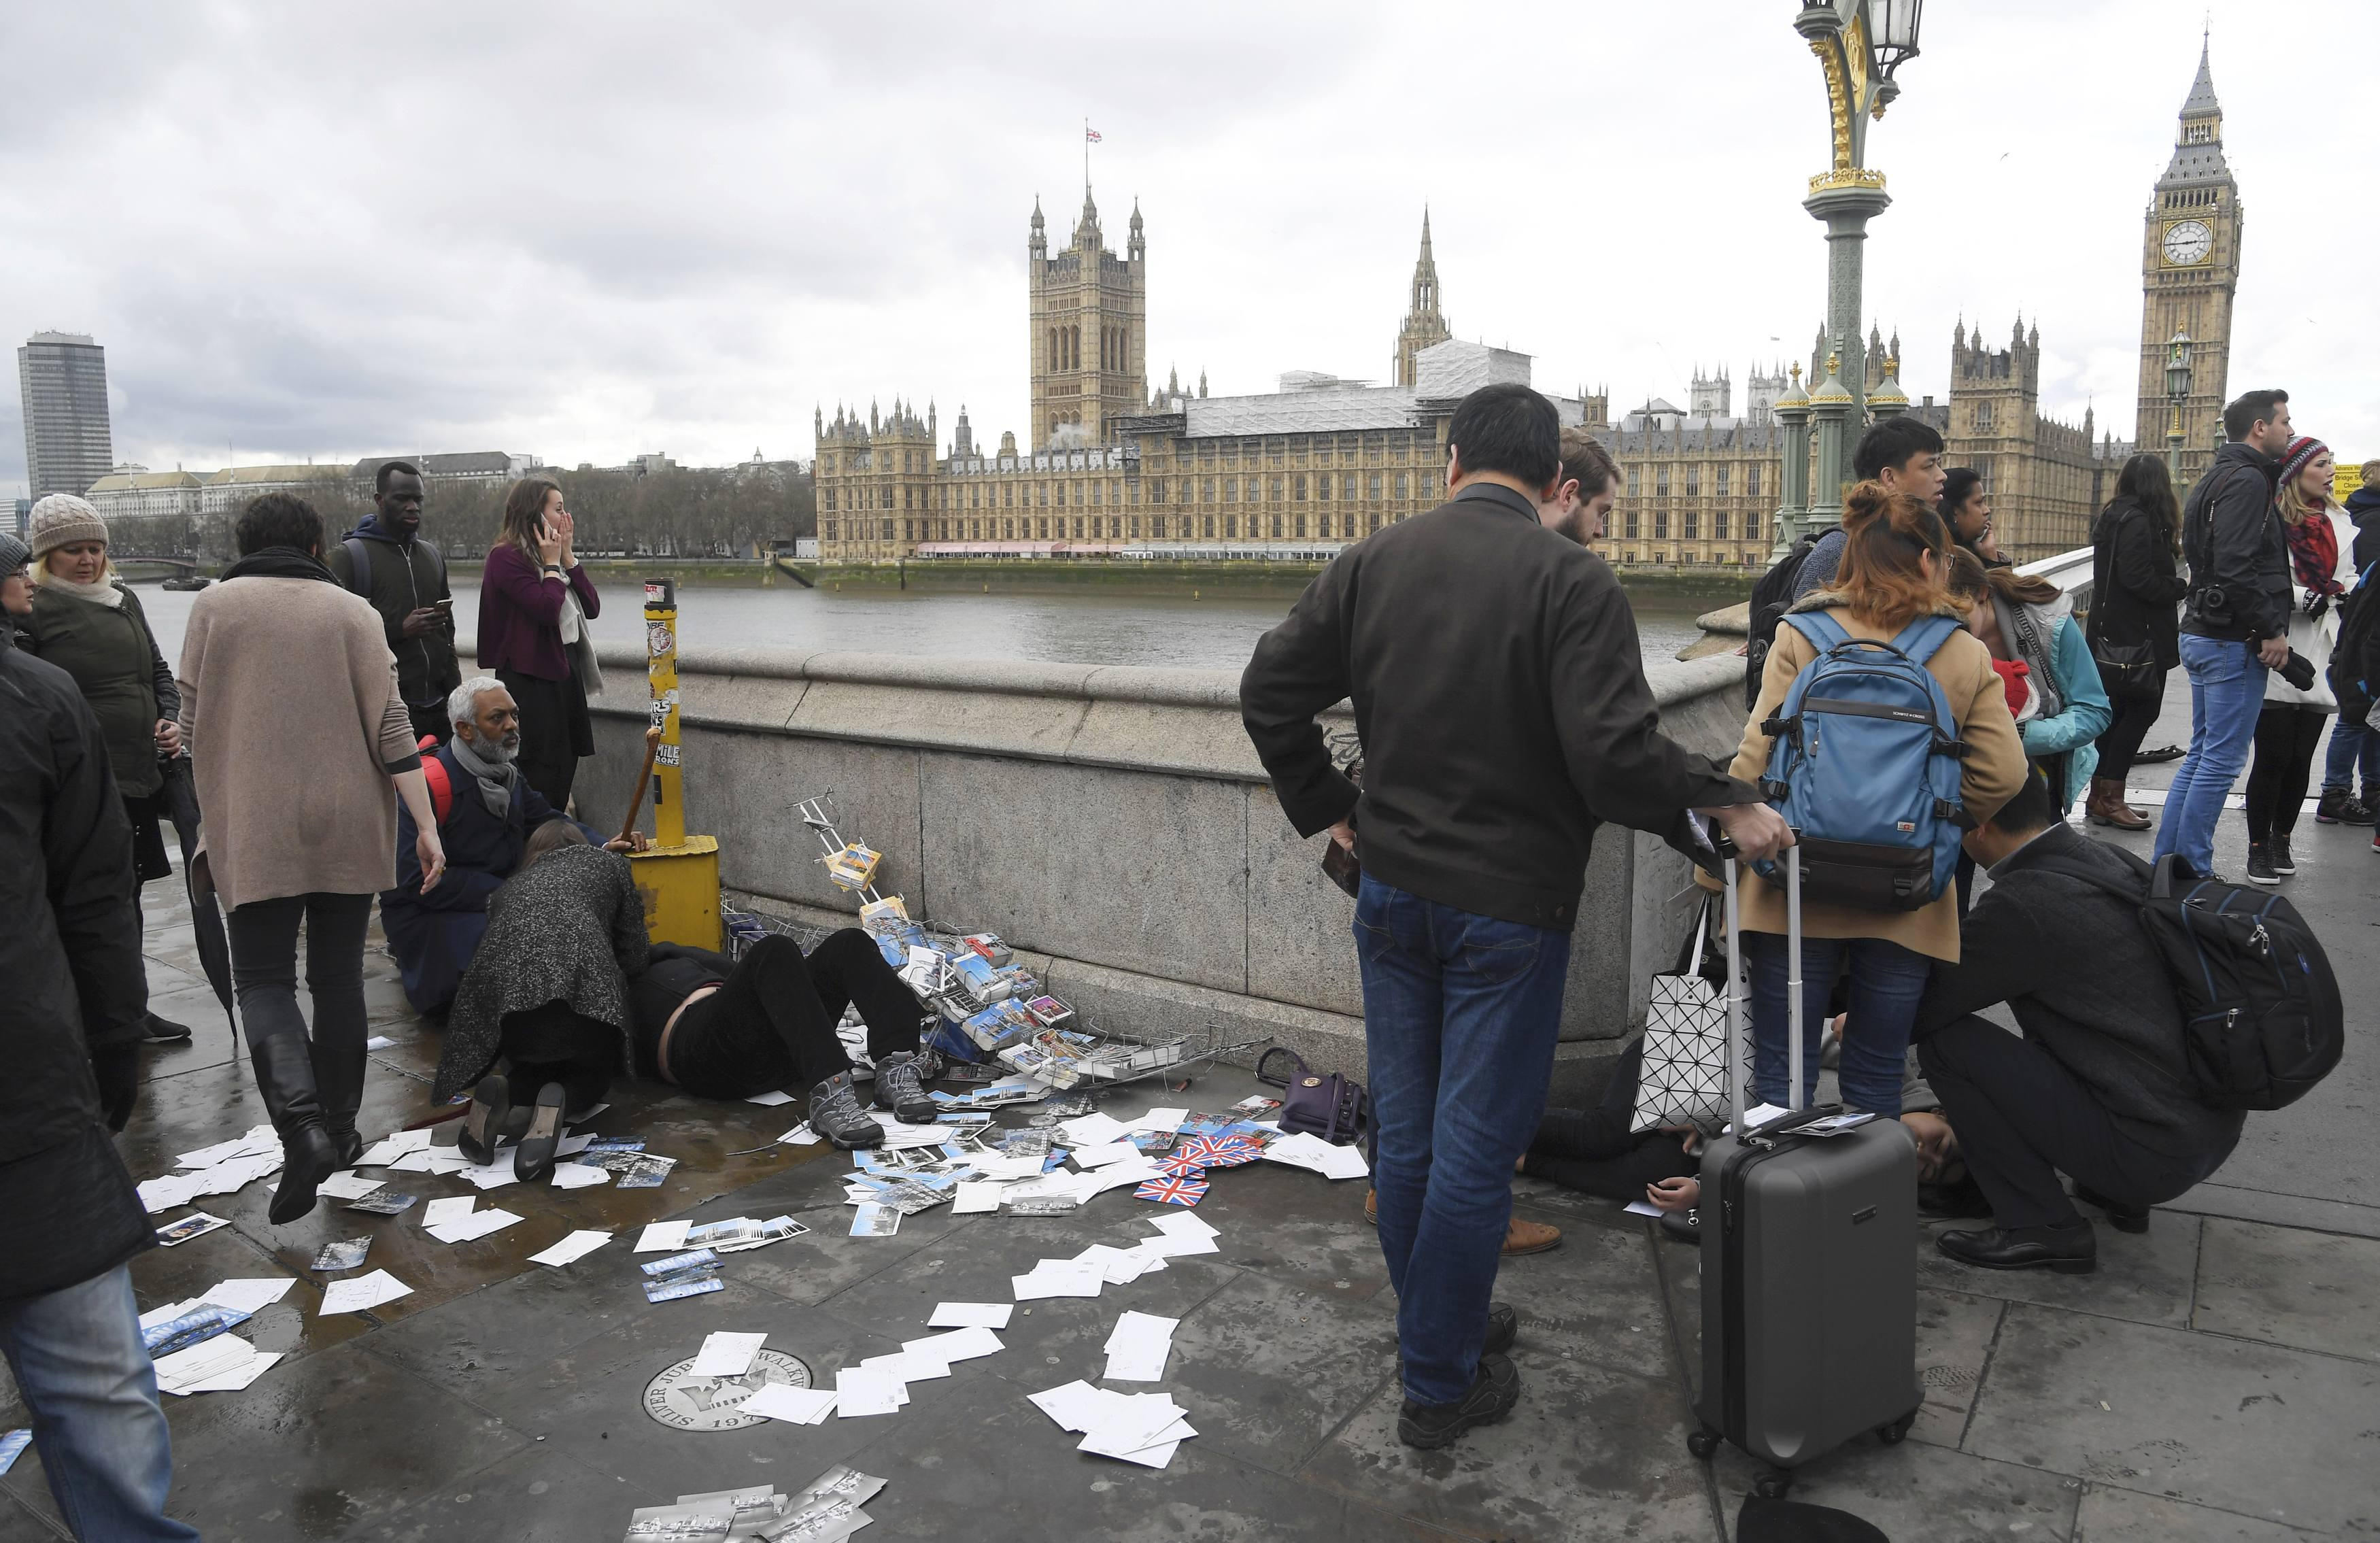 Injured people are assisted after an incident on Westminster Bridge in London on March 22, 2017.  (REUTERS/Toby Melville)